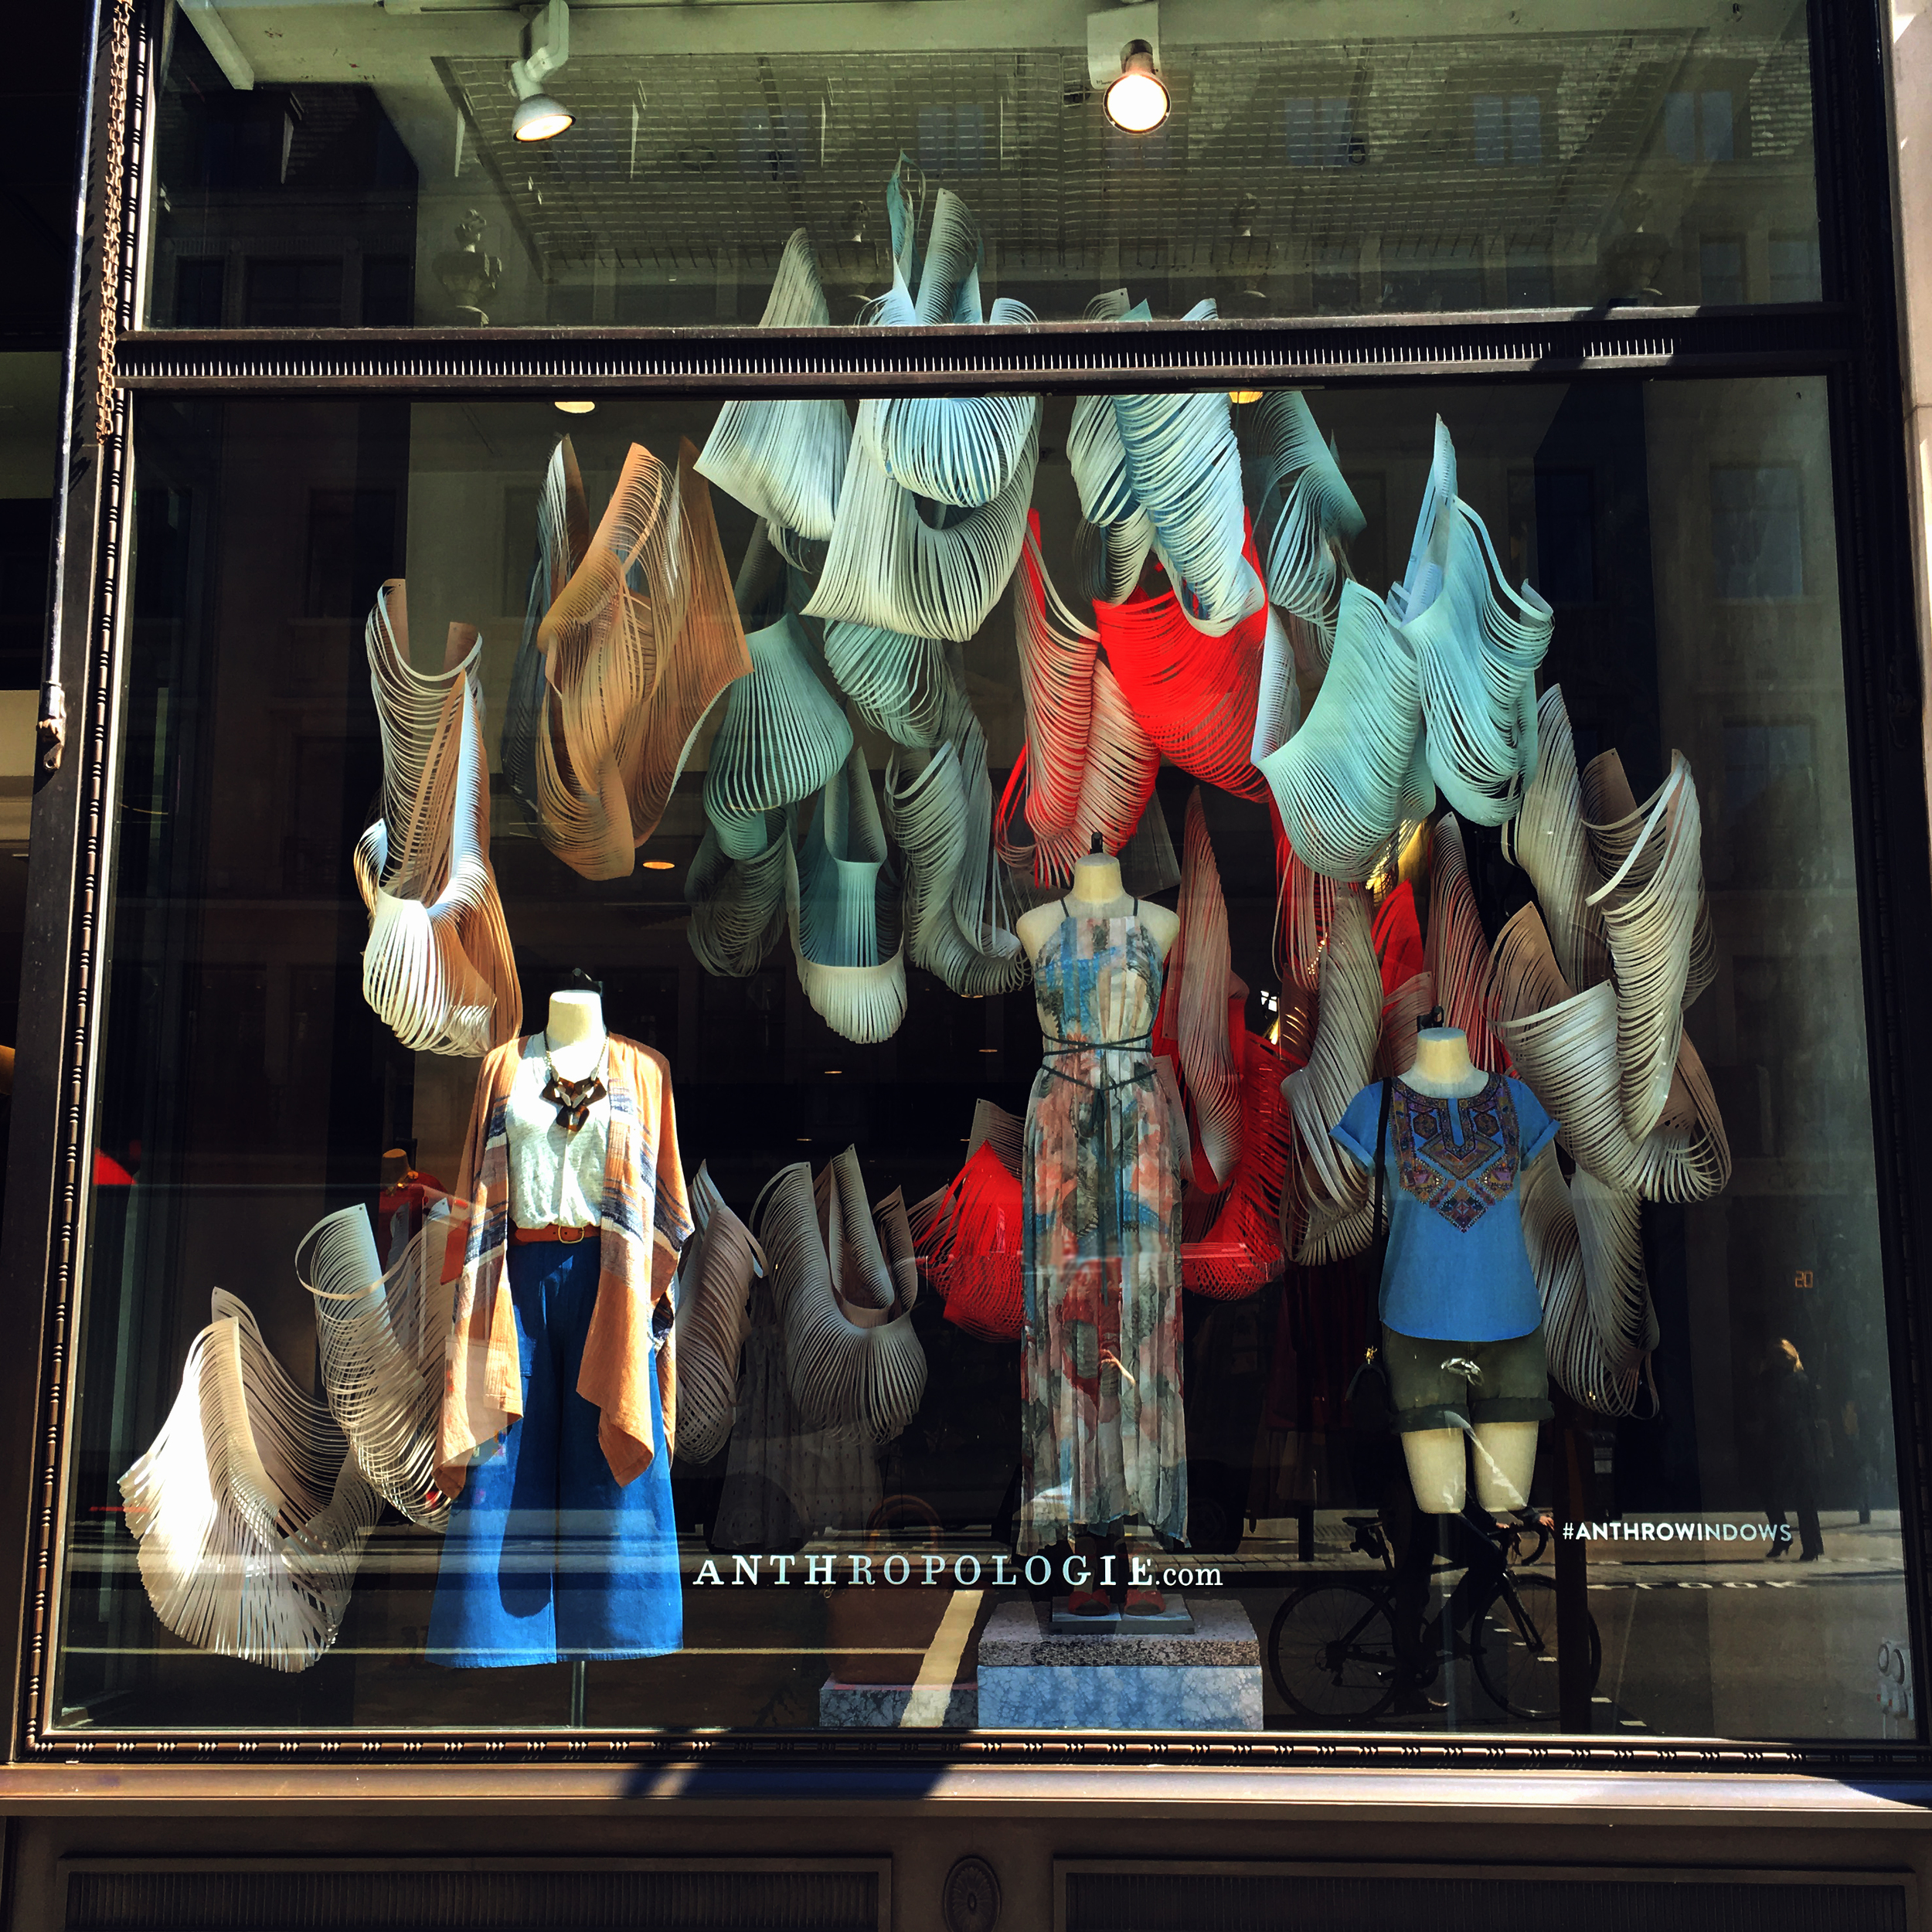 anthropologie-window-displays.jpg